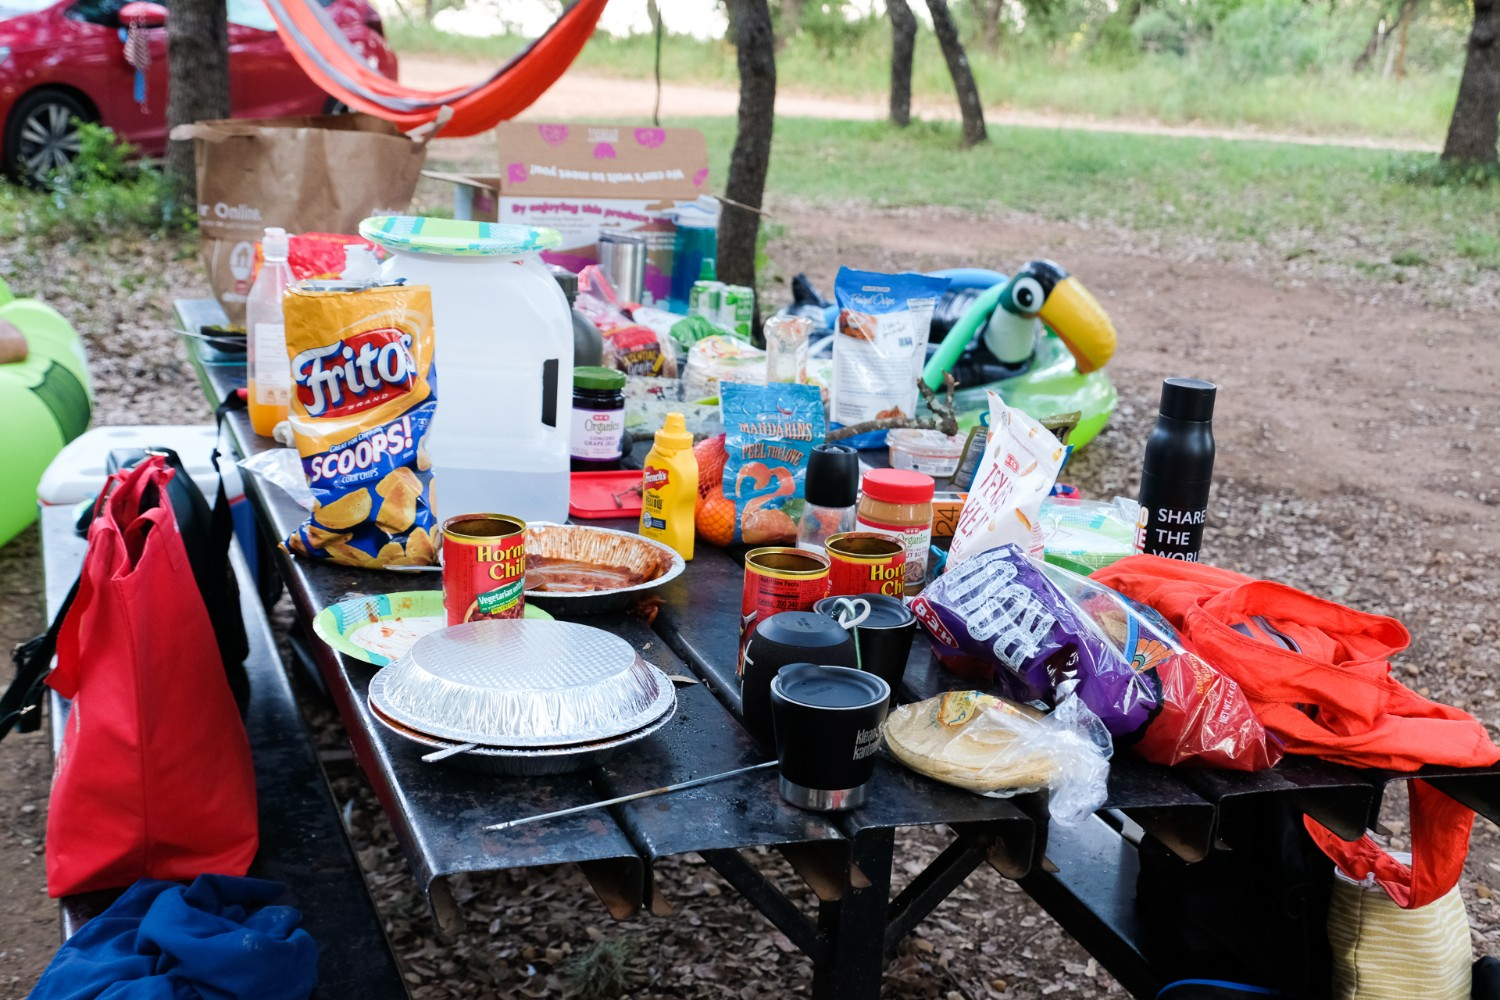 Table filled with snack foods while camping